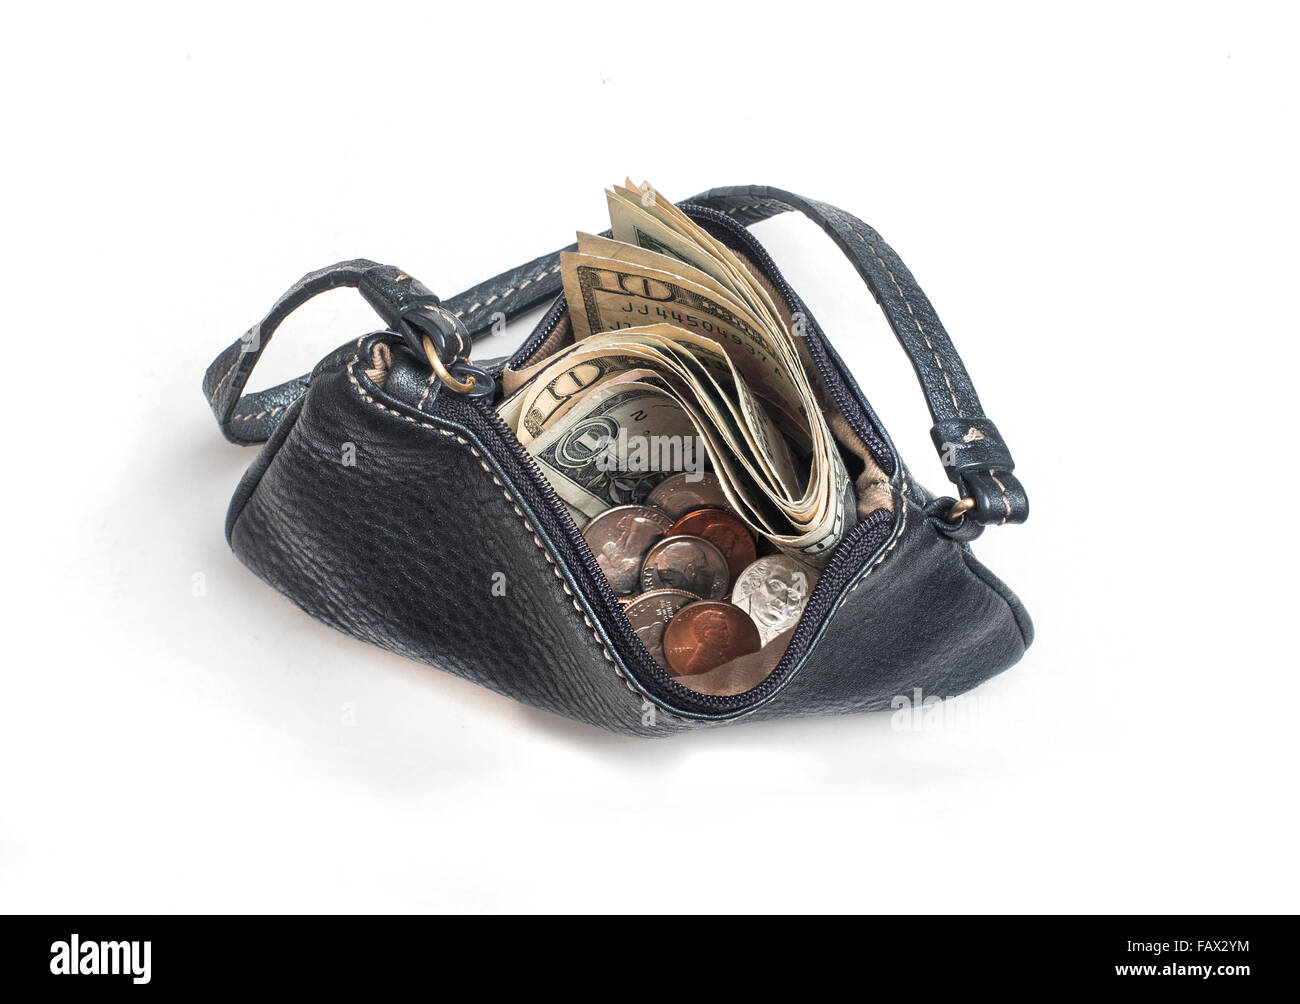 open coin purse with money viewed from above - Stock Image